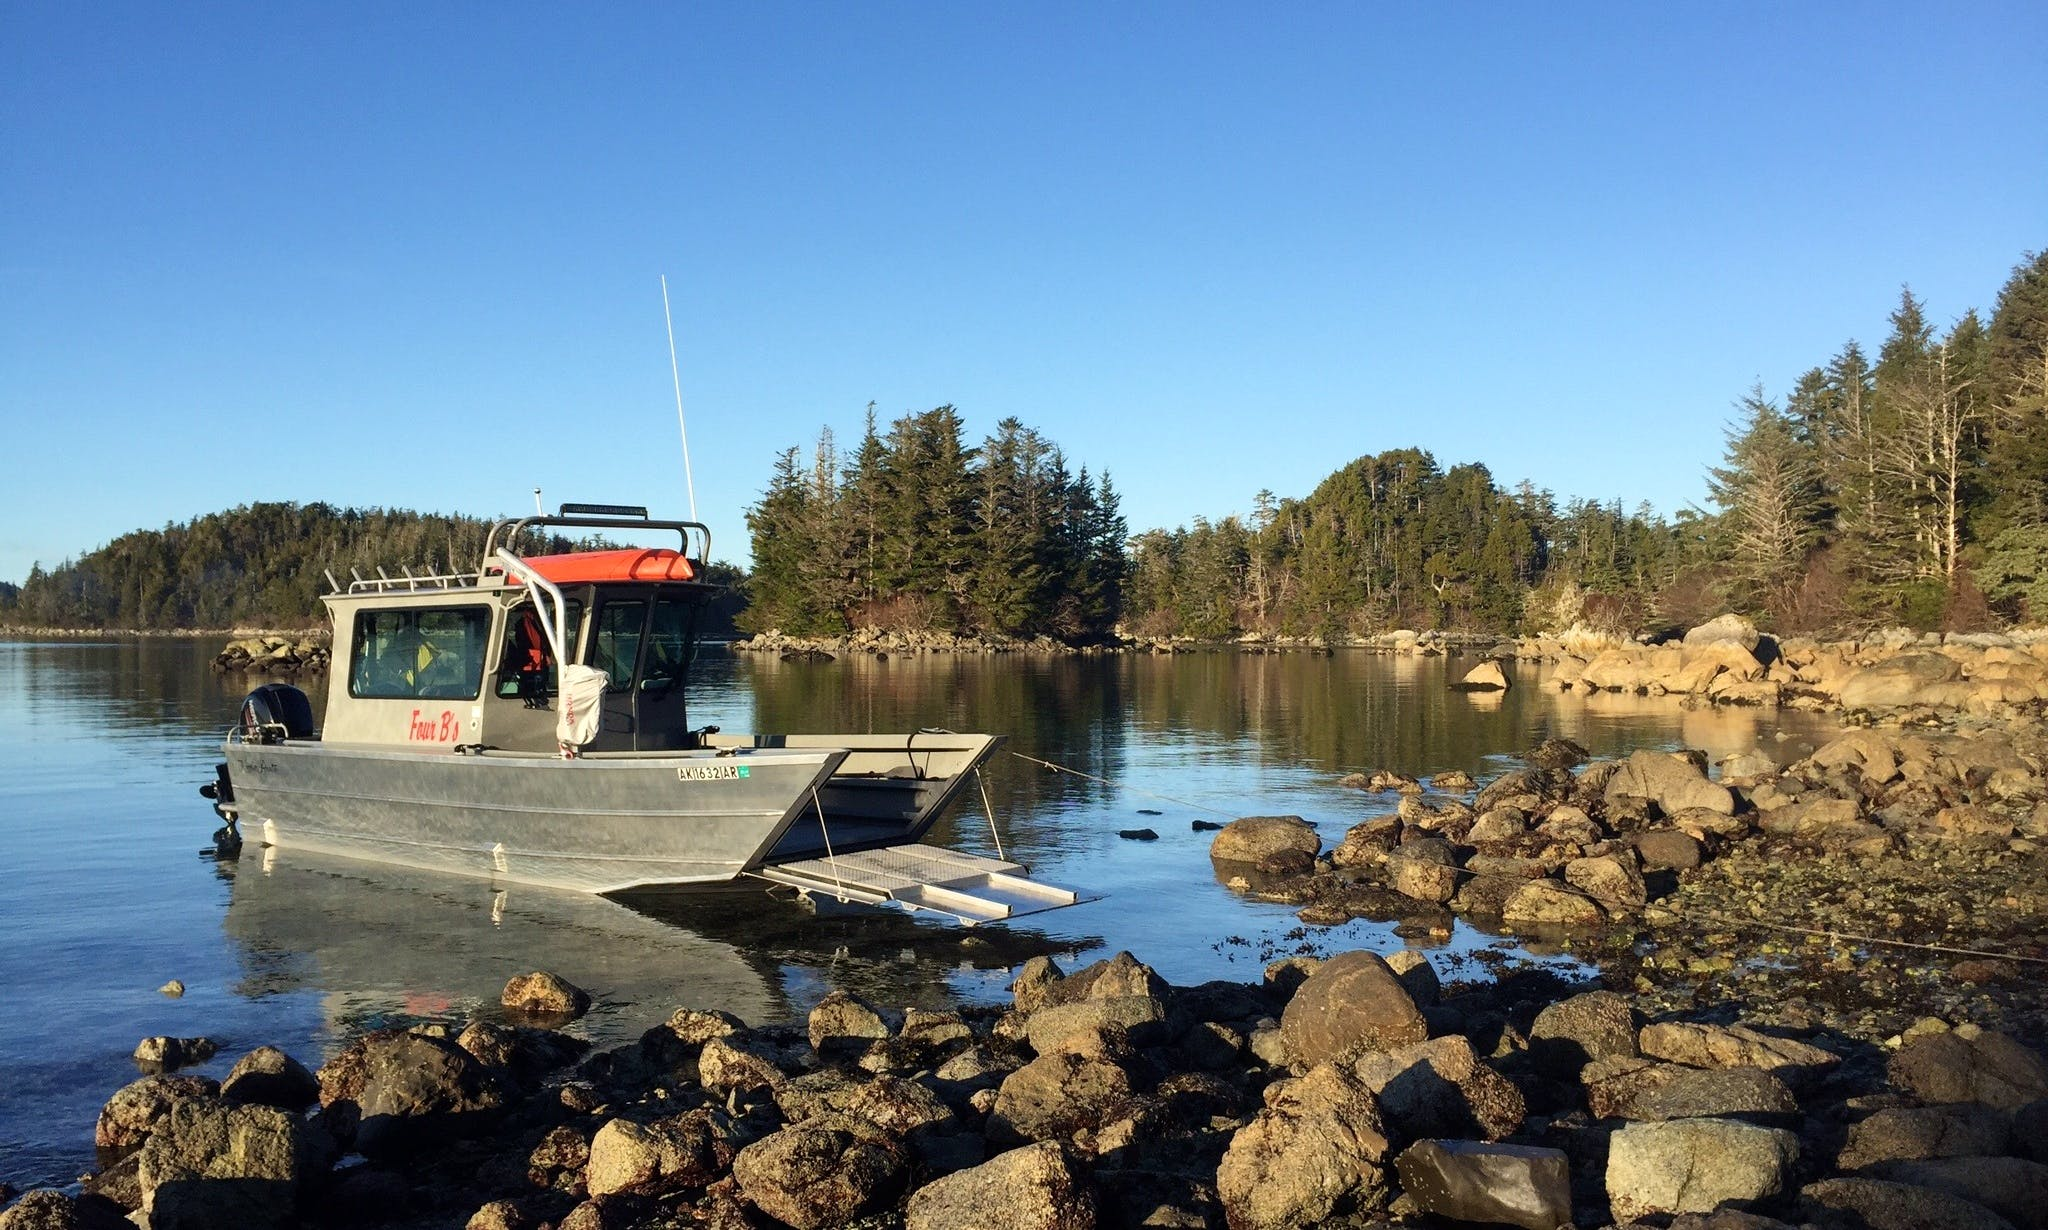 Enjoy Wildlife Tours On 26' Passenger Boat In Sitka, Alaska